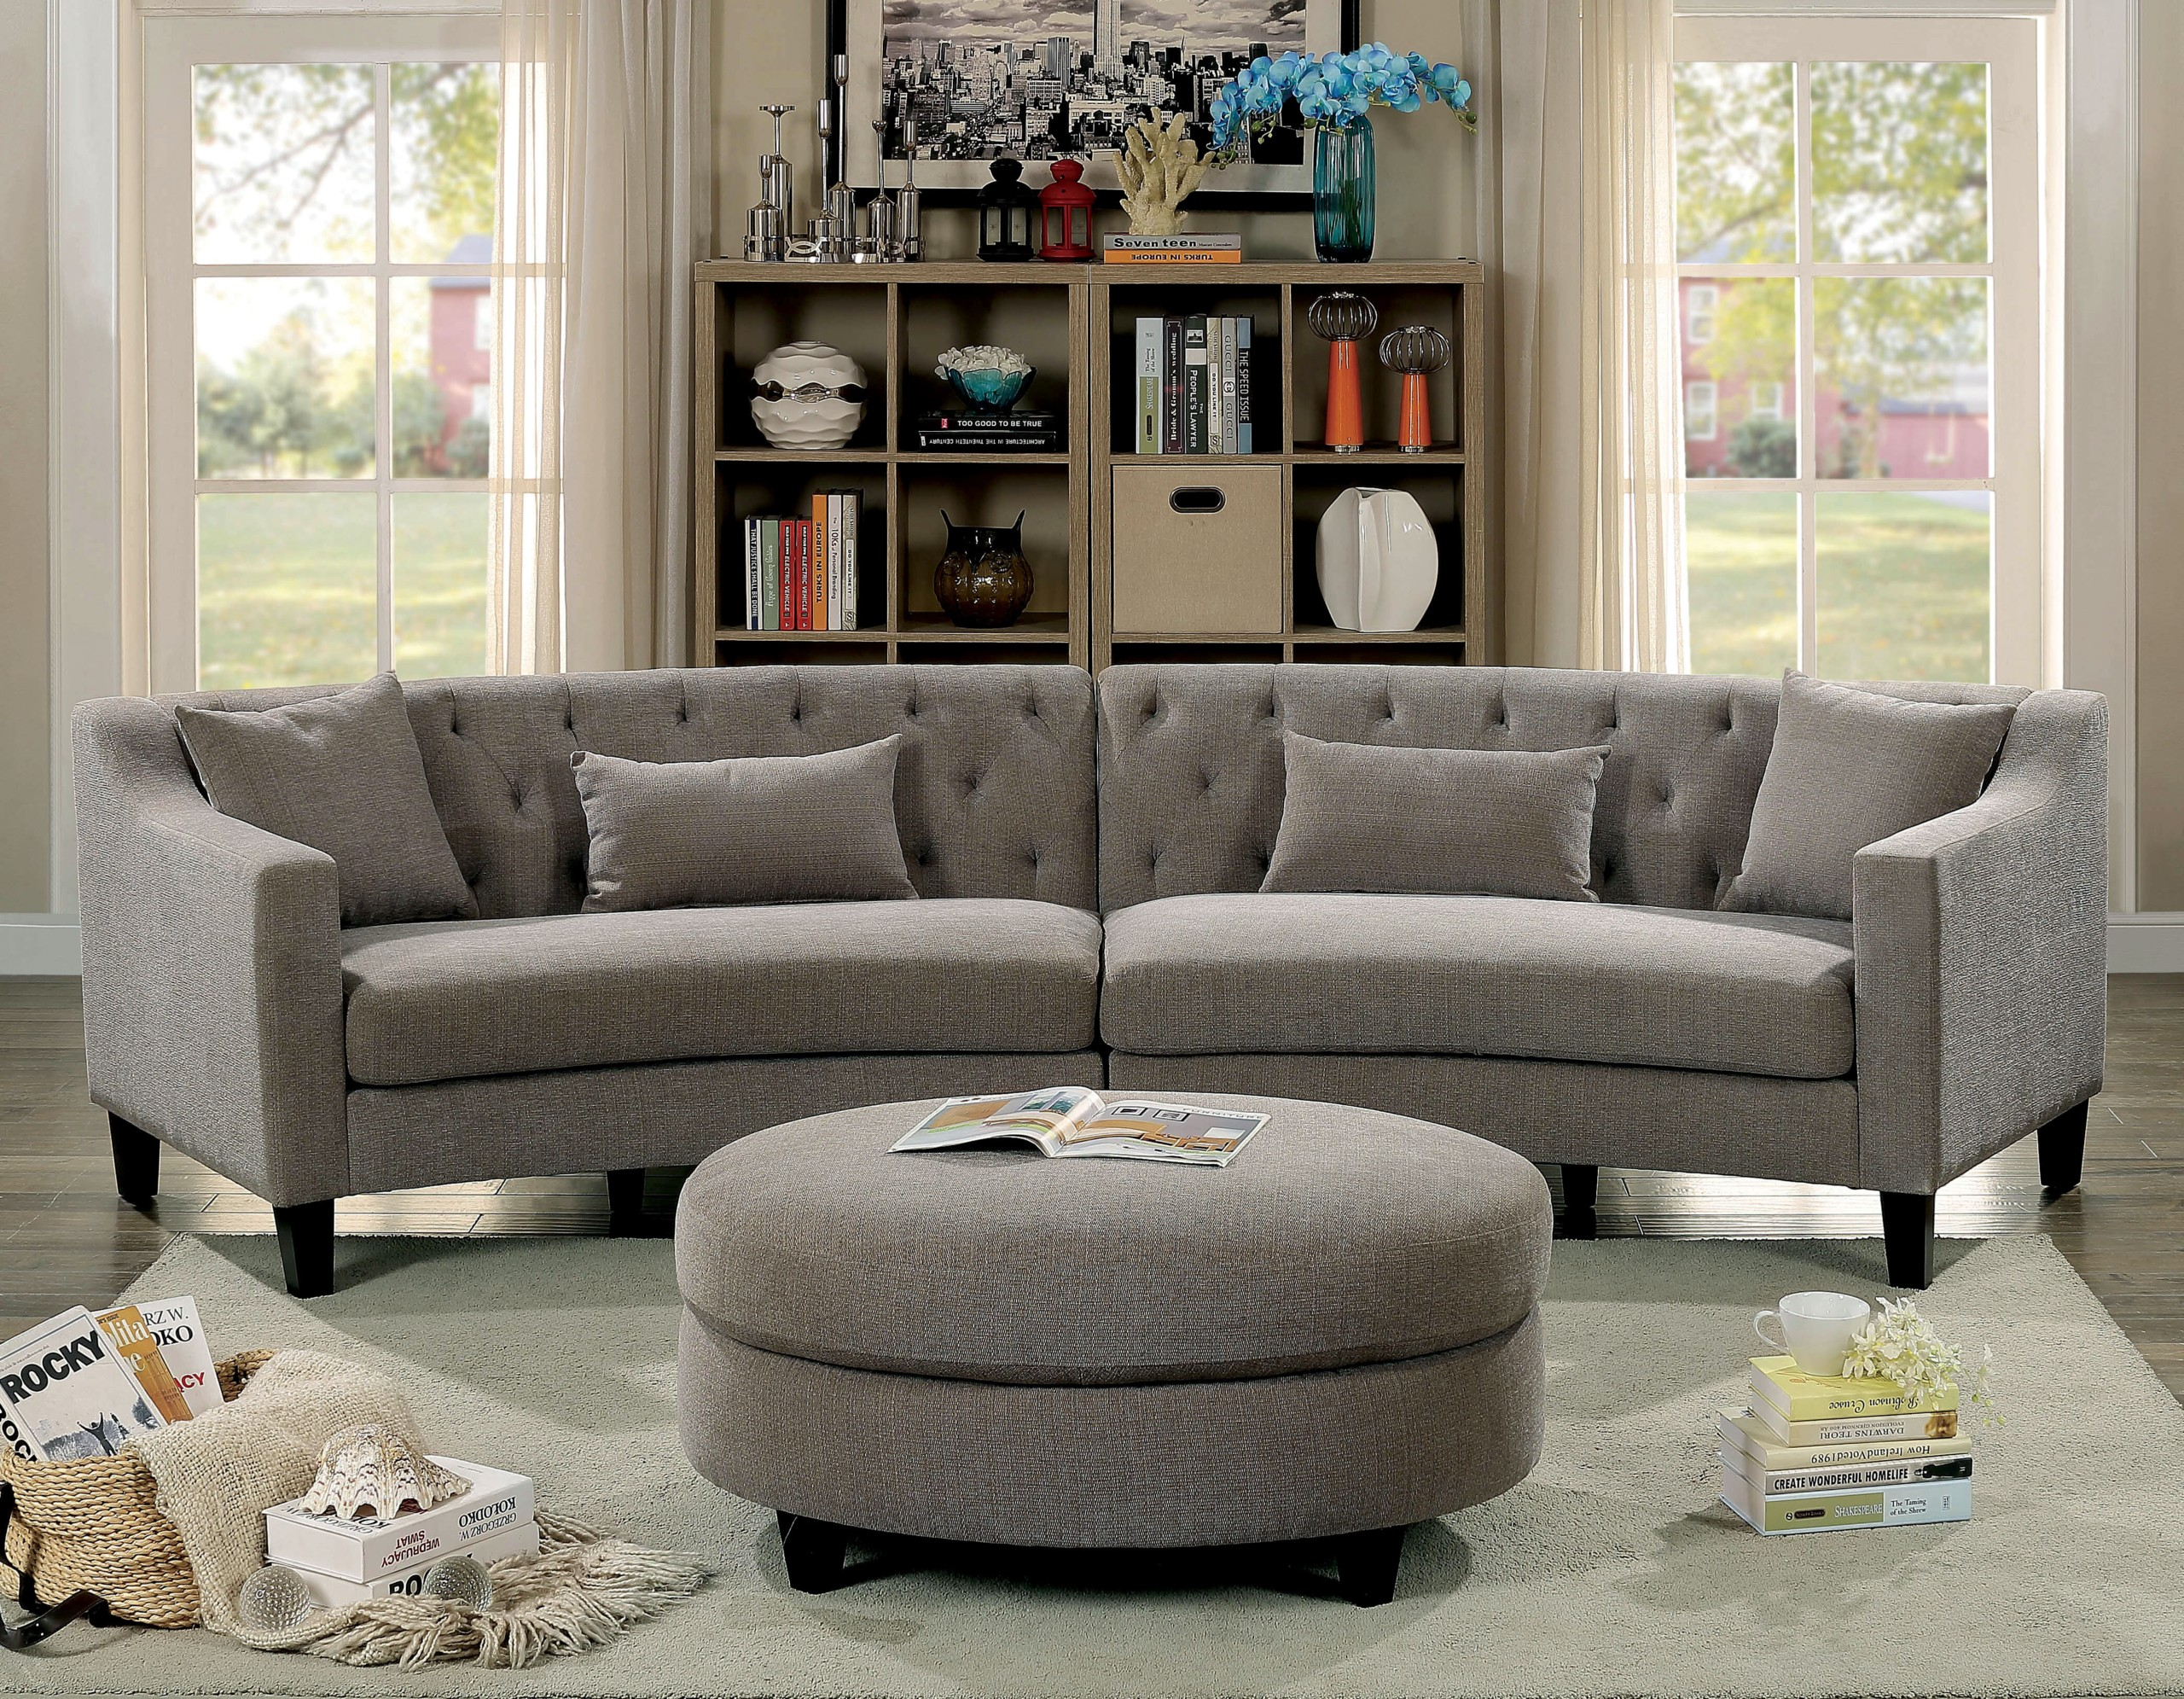 curved sectional sofa couch ideas on foter rh foter com curved leather sofa couch